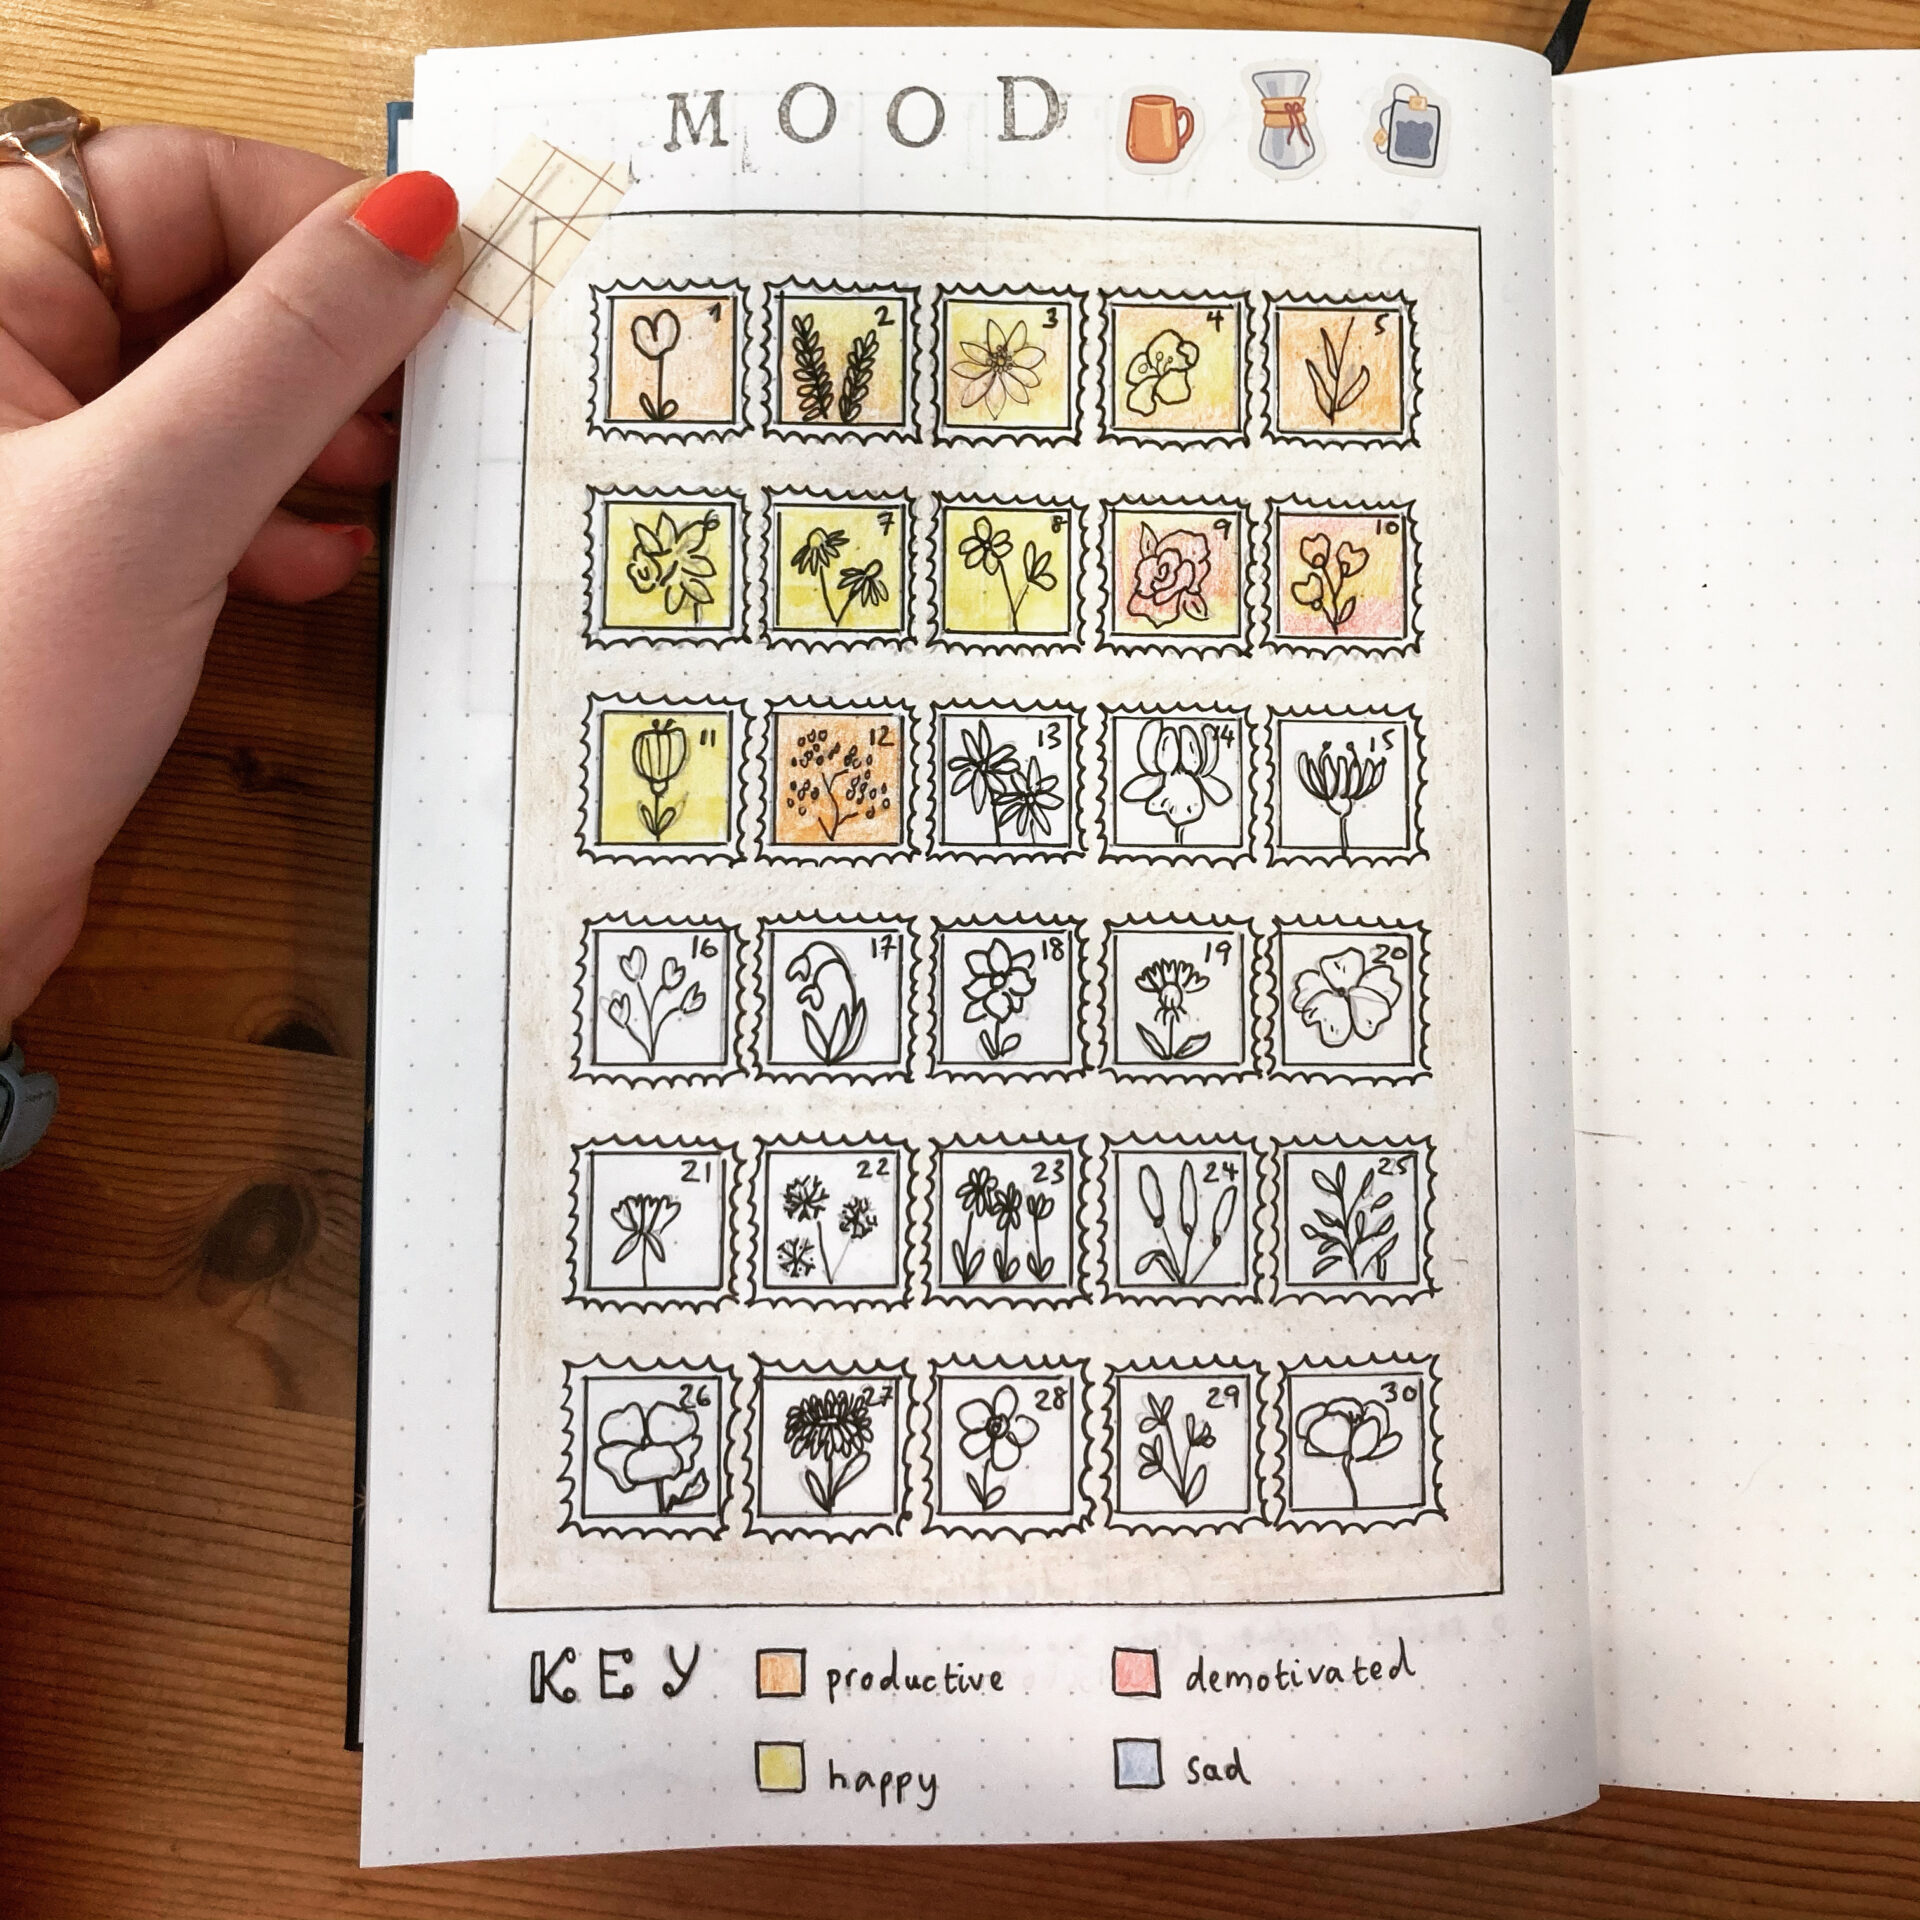 In Megan's image, is one page of a notebook which displays a mood tracker. Each tracker is drawn like a floral stamps.